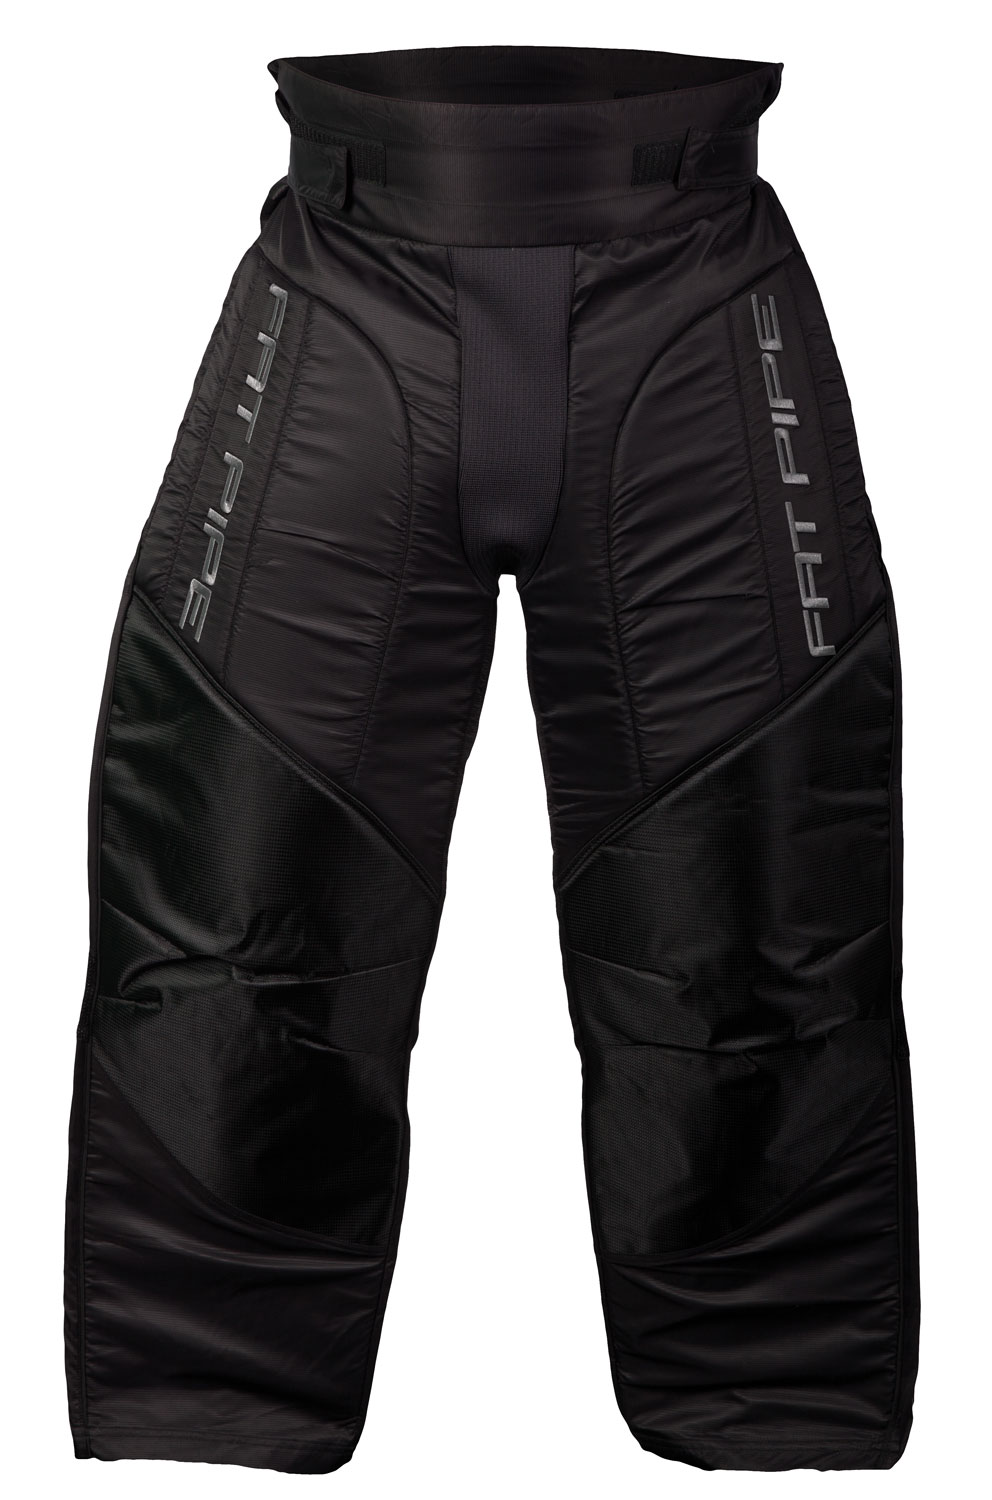 Fatpipe GK Pants for Junior